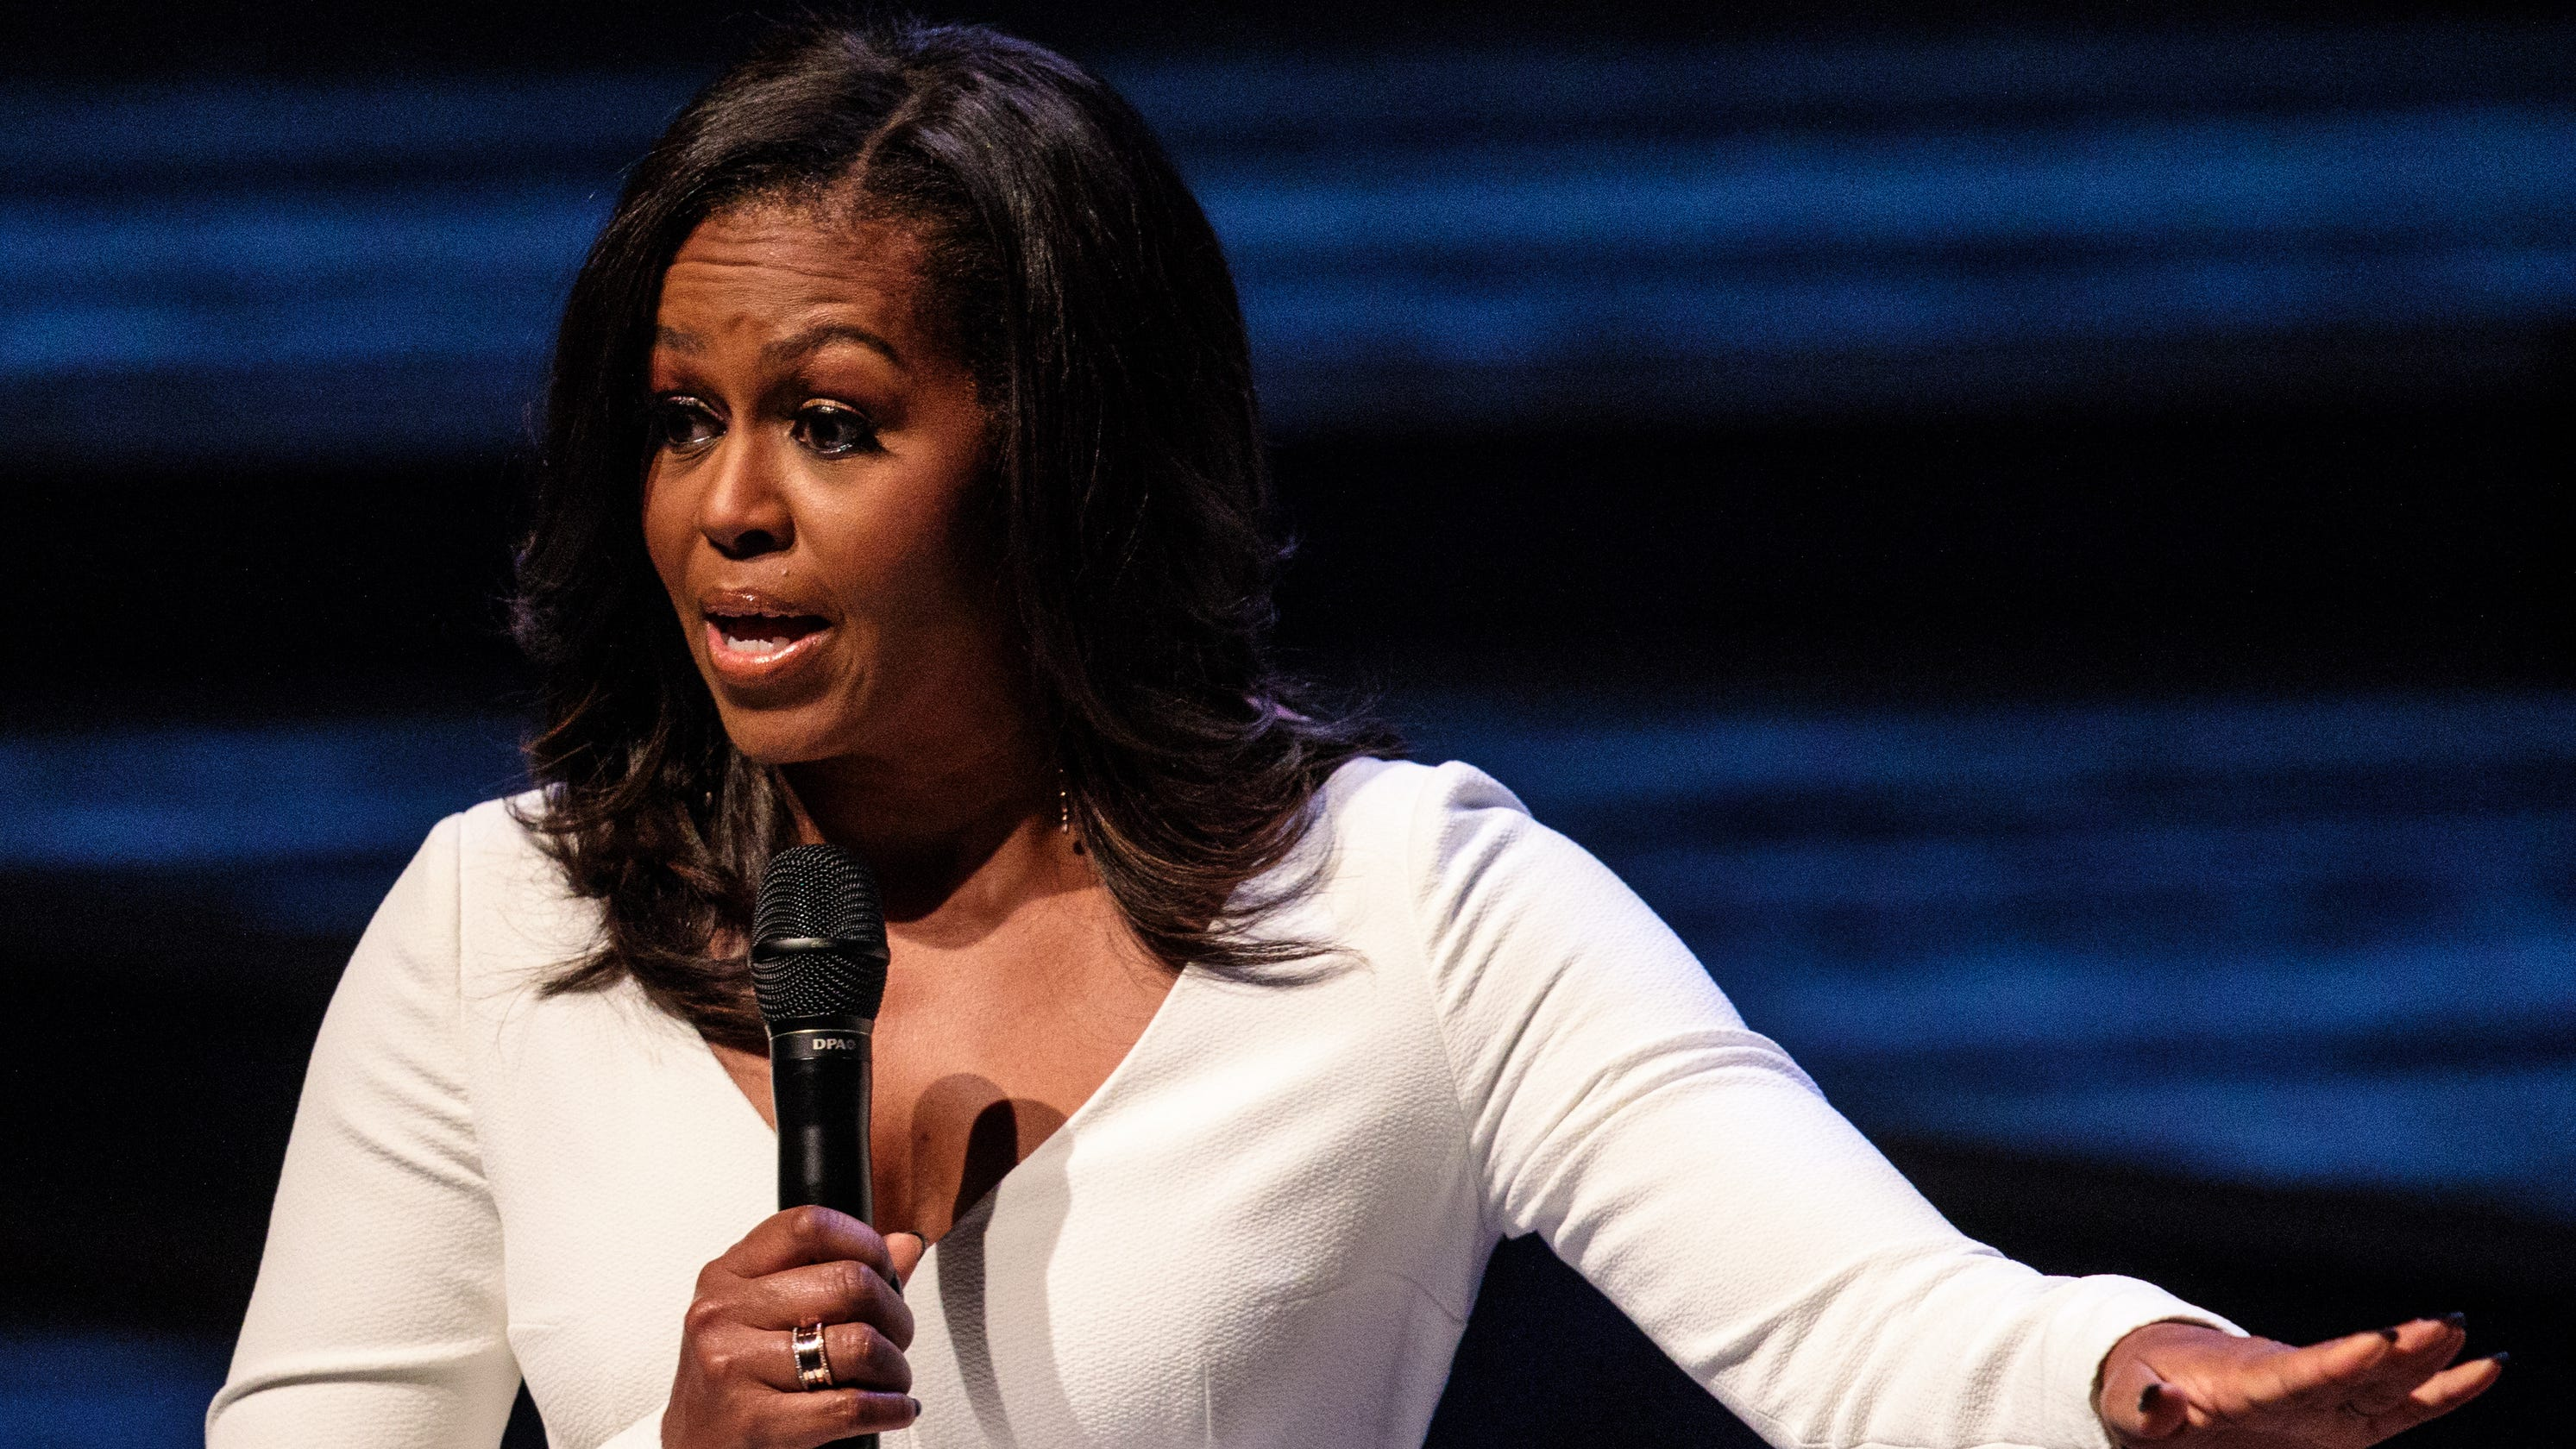 Michelle Obama coming to Prudential Center in Newark NJ